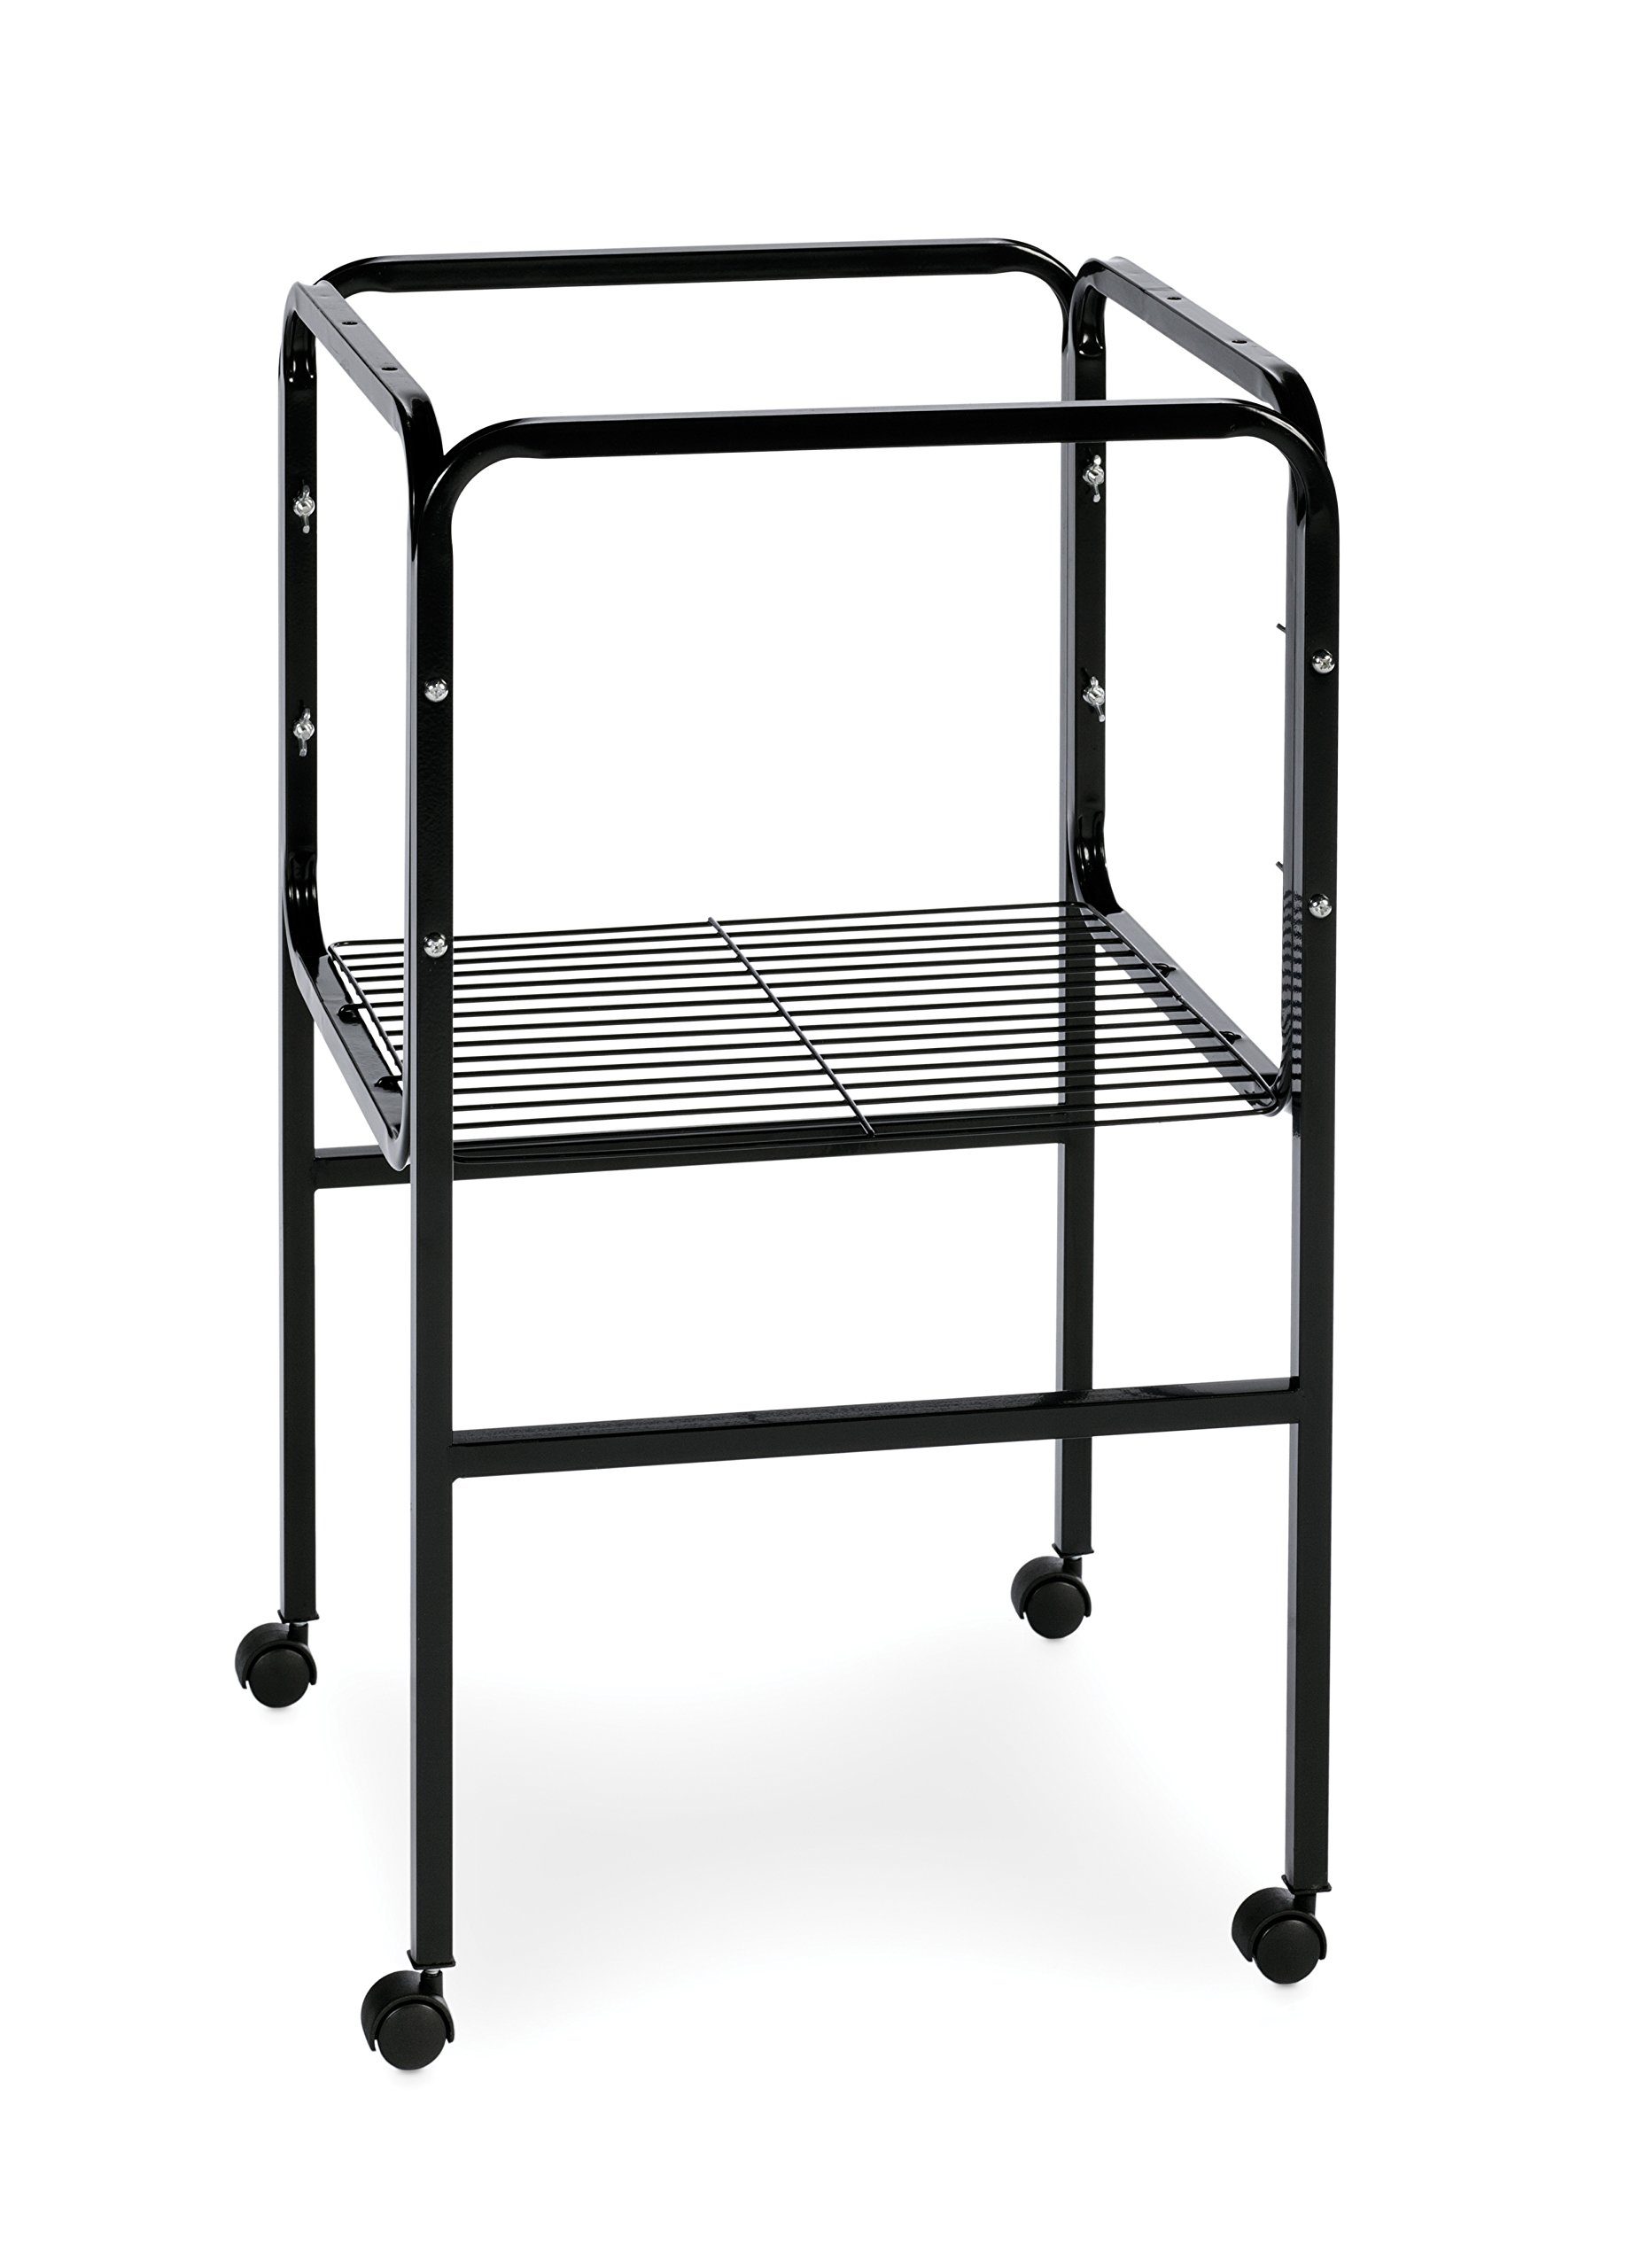 Prevue Pet Products Bird Cage Stand with Shelf, Black by Prevue Pet Products